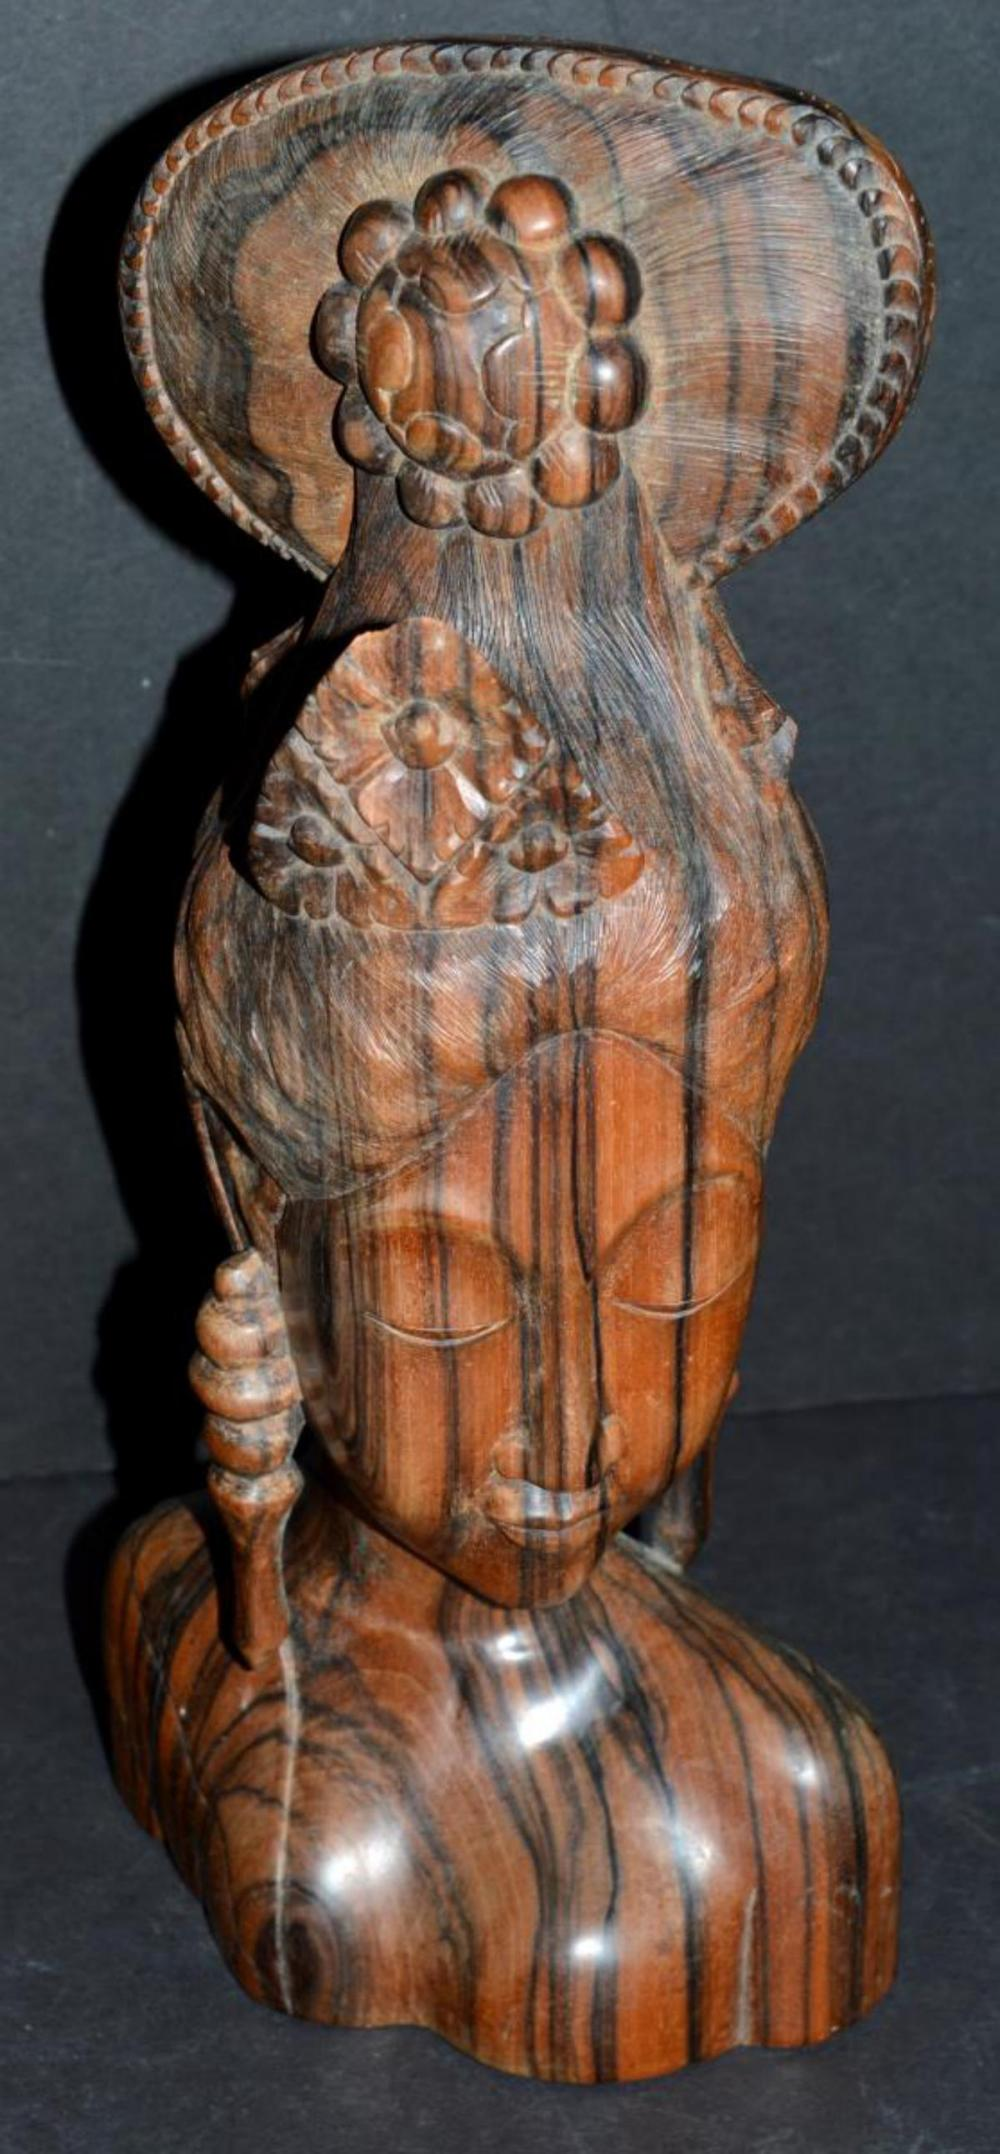 Carved Zebra or Olive Wood Bust of Balinese Woman